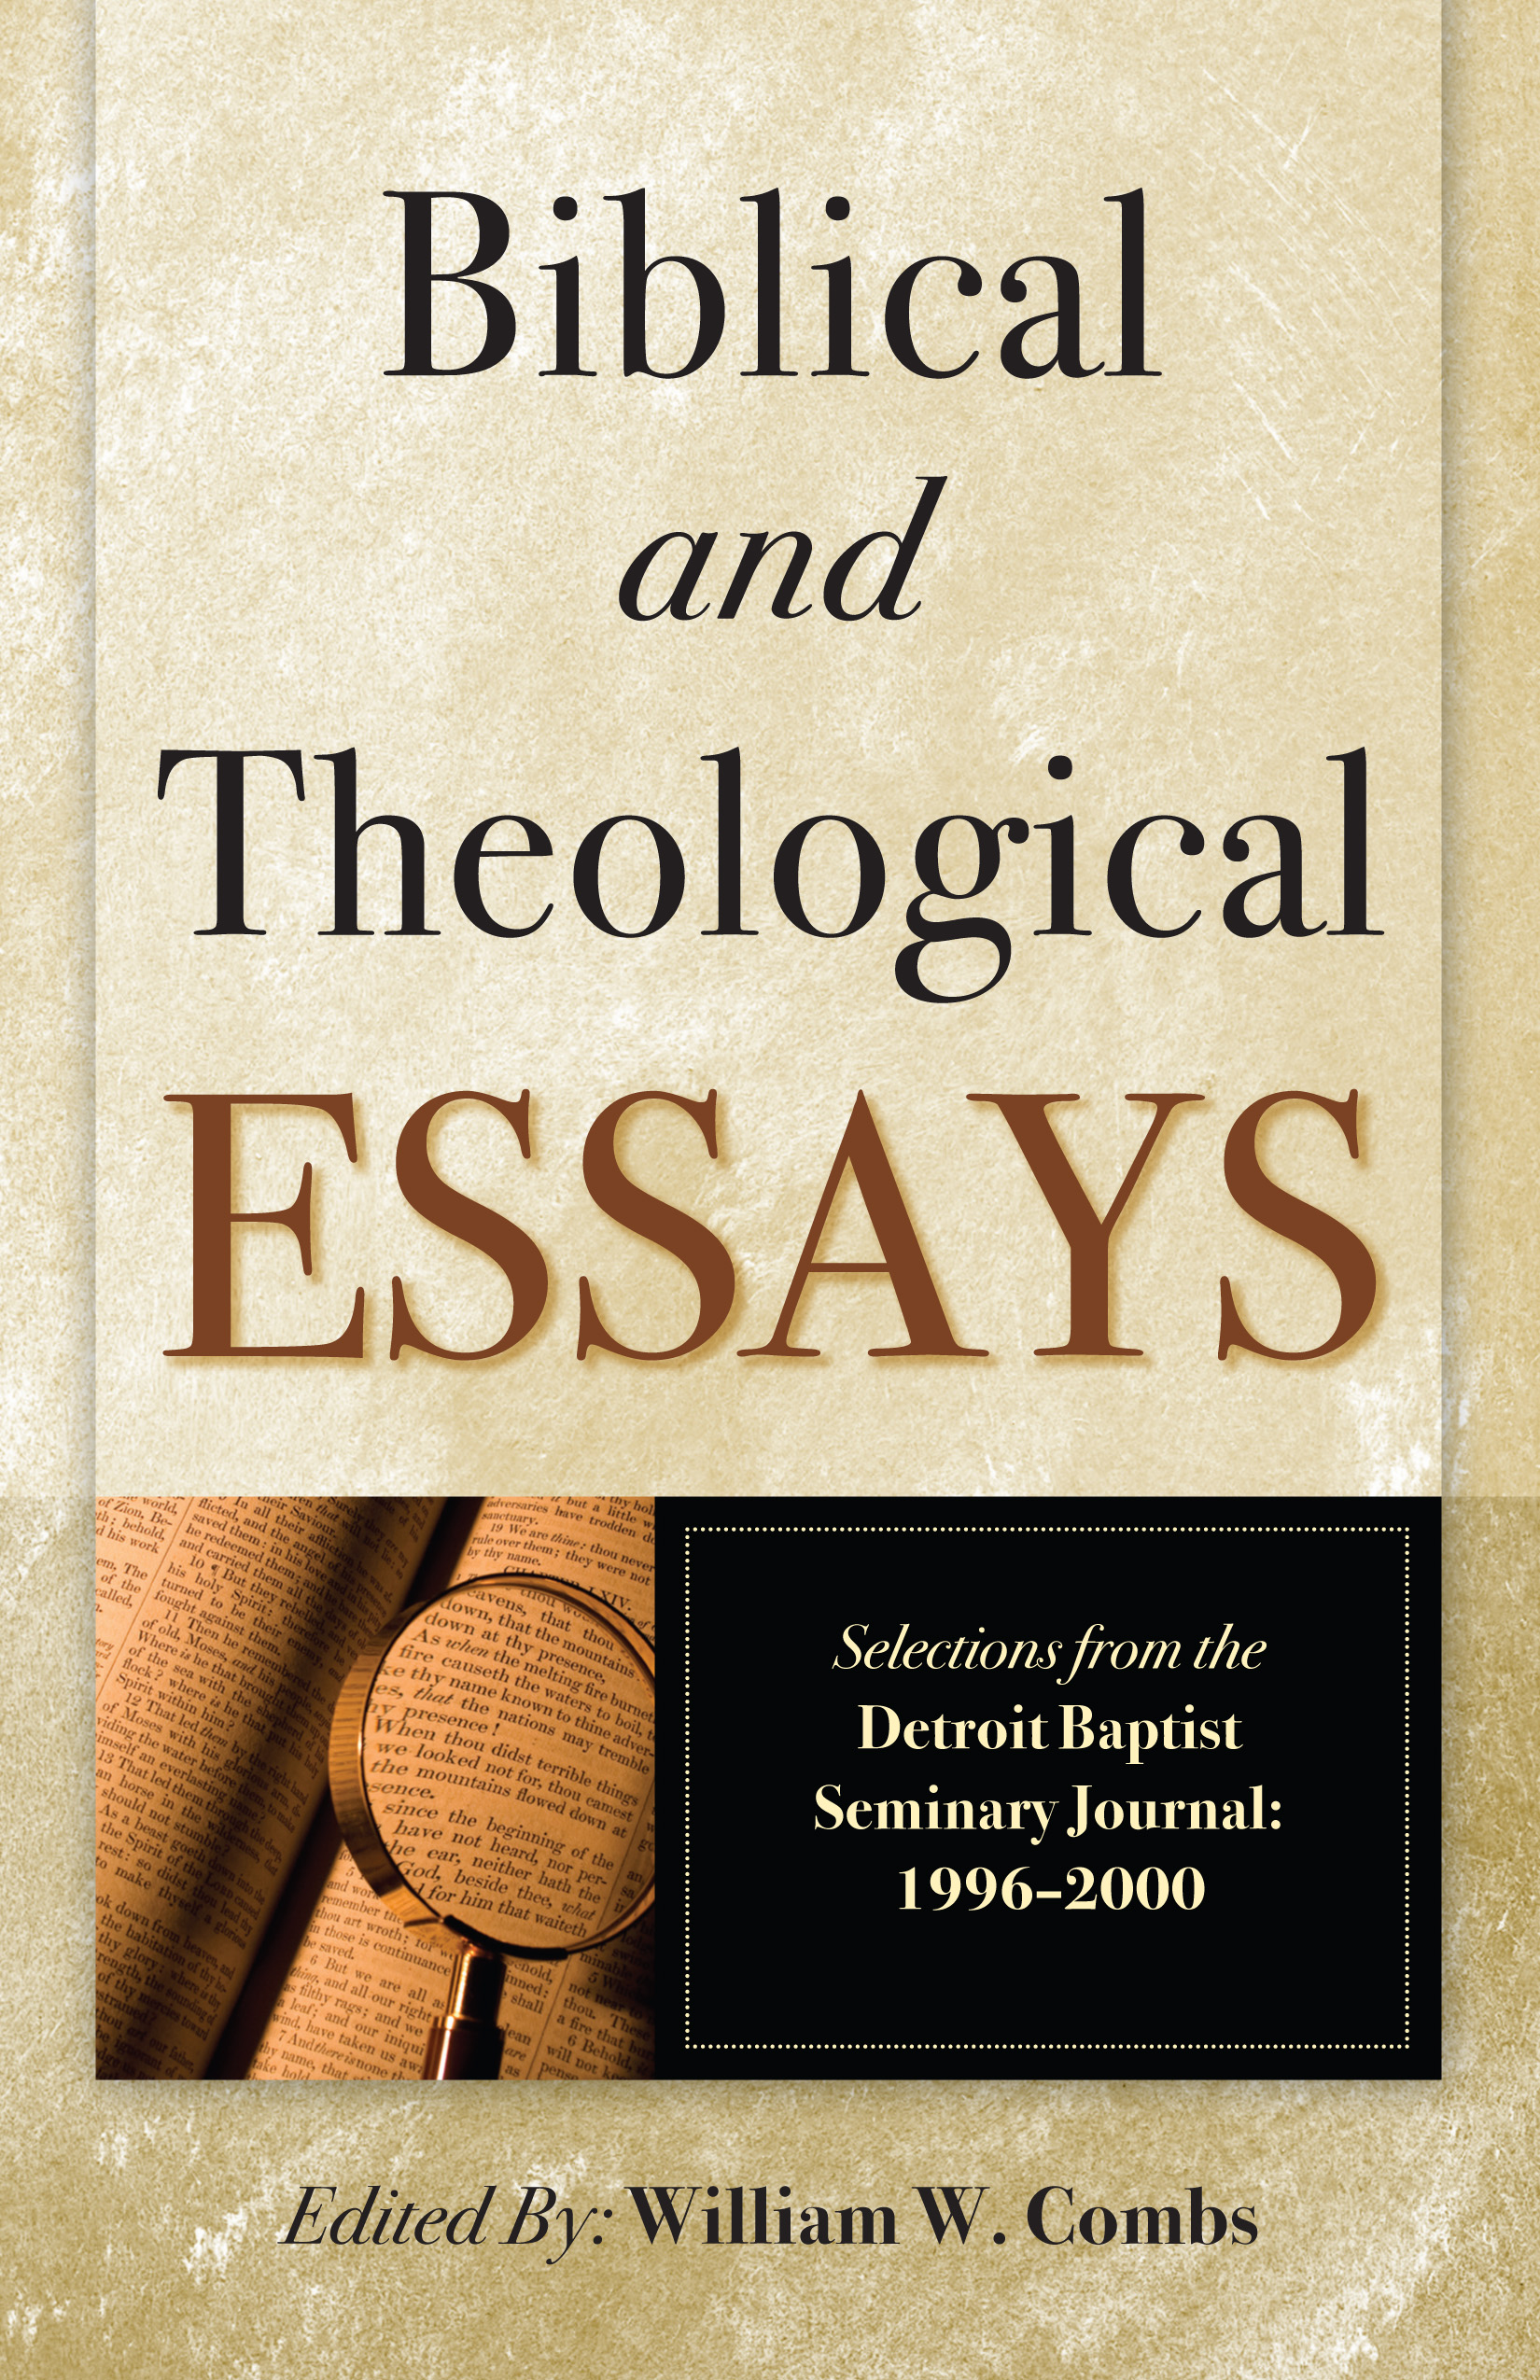 biblical essays  biblical essays joseph barber lightfoot christian classics books at